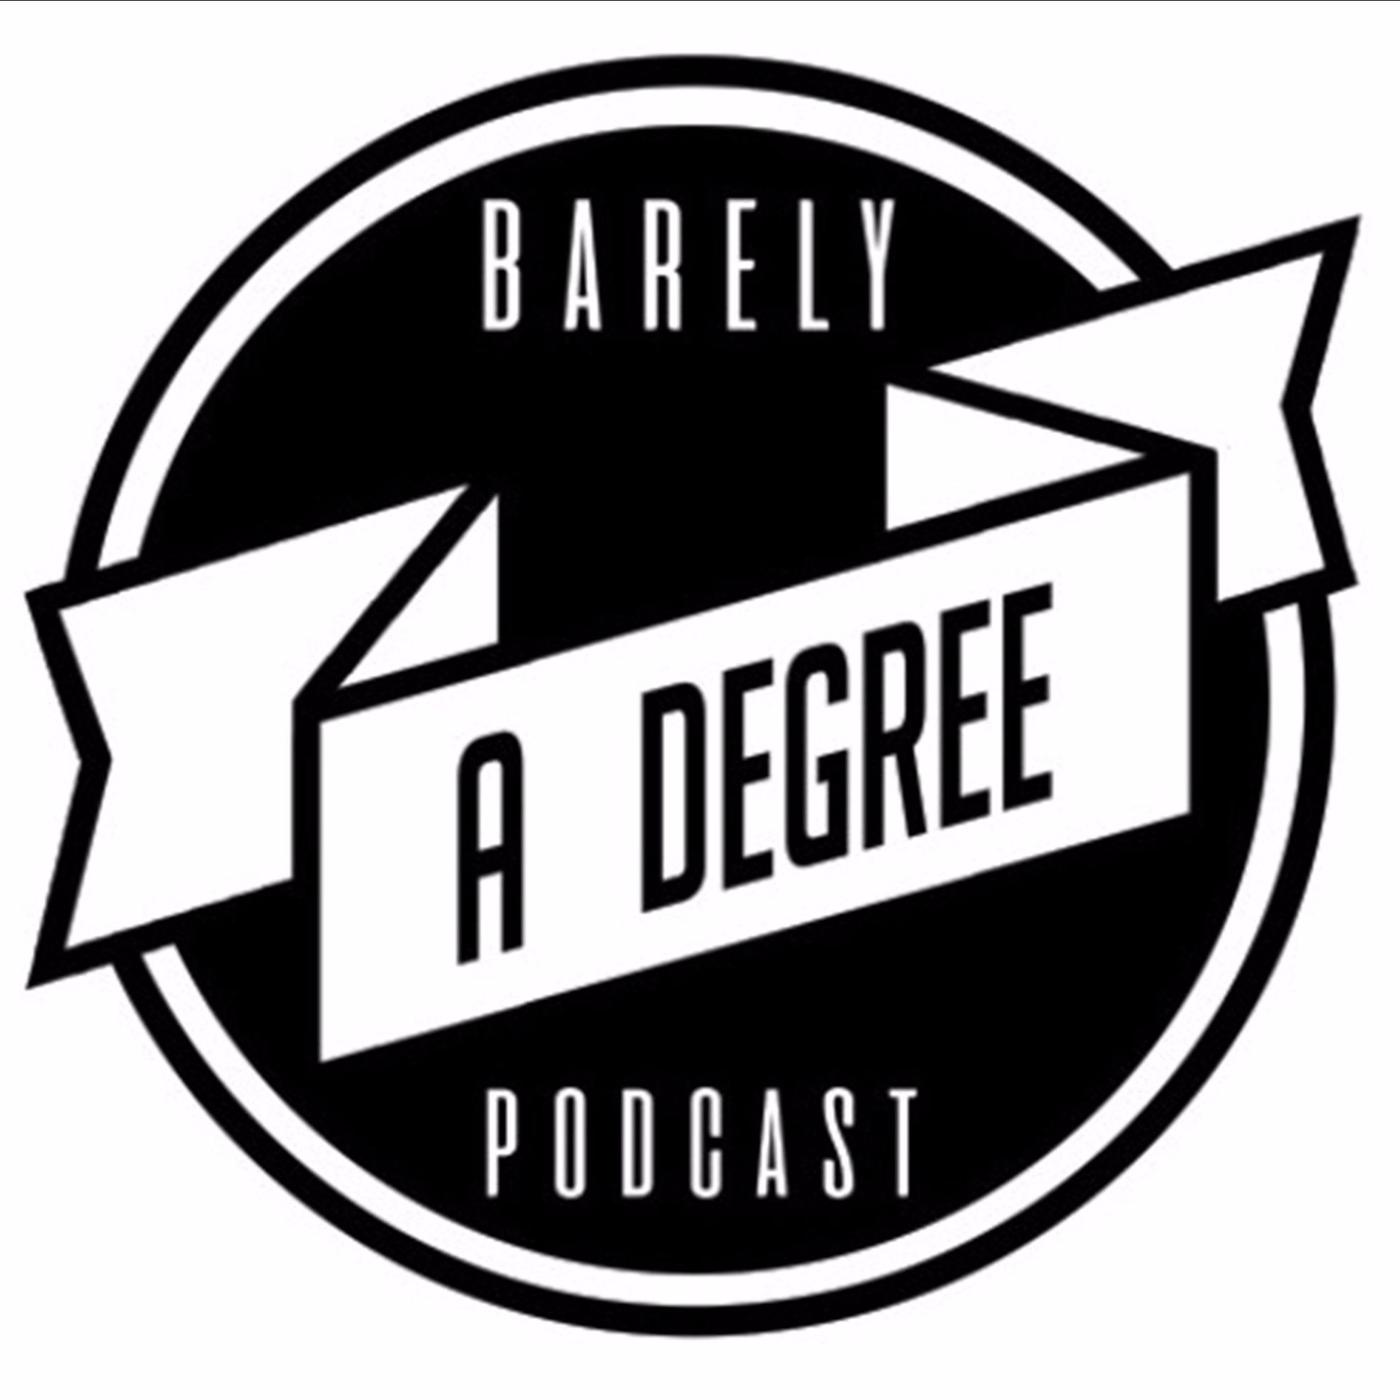 Barely A Degree (podcast) - Barely A Degree | Listen Notes